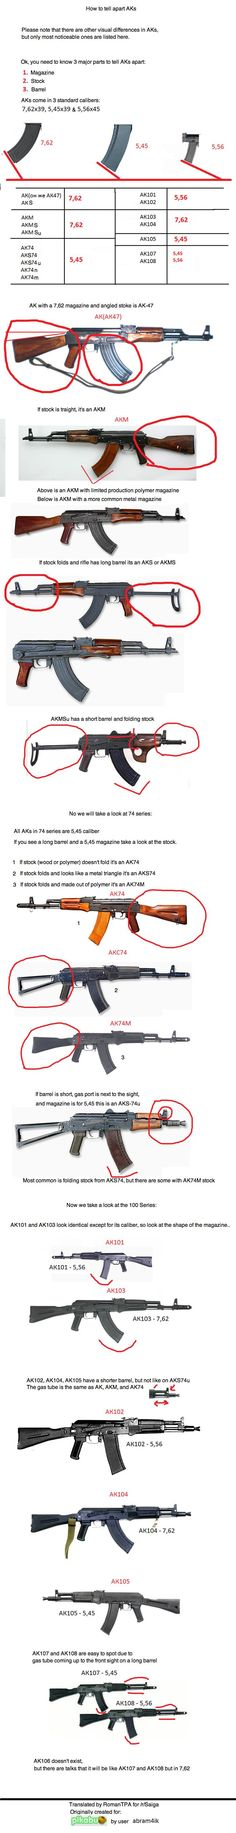 How to tell the differences in AK rifles.